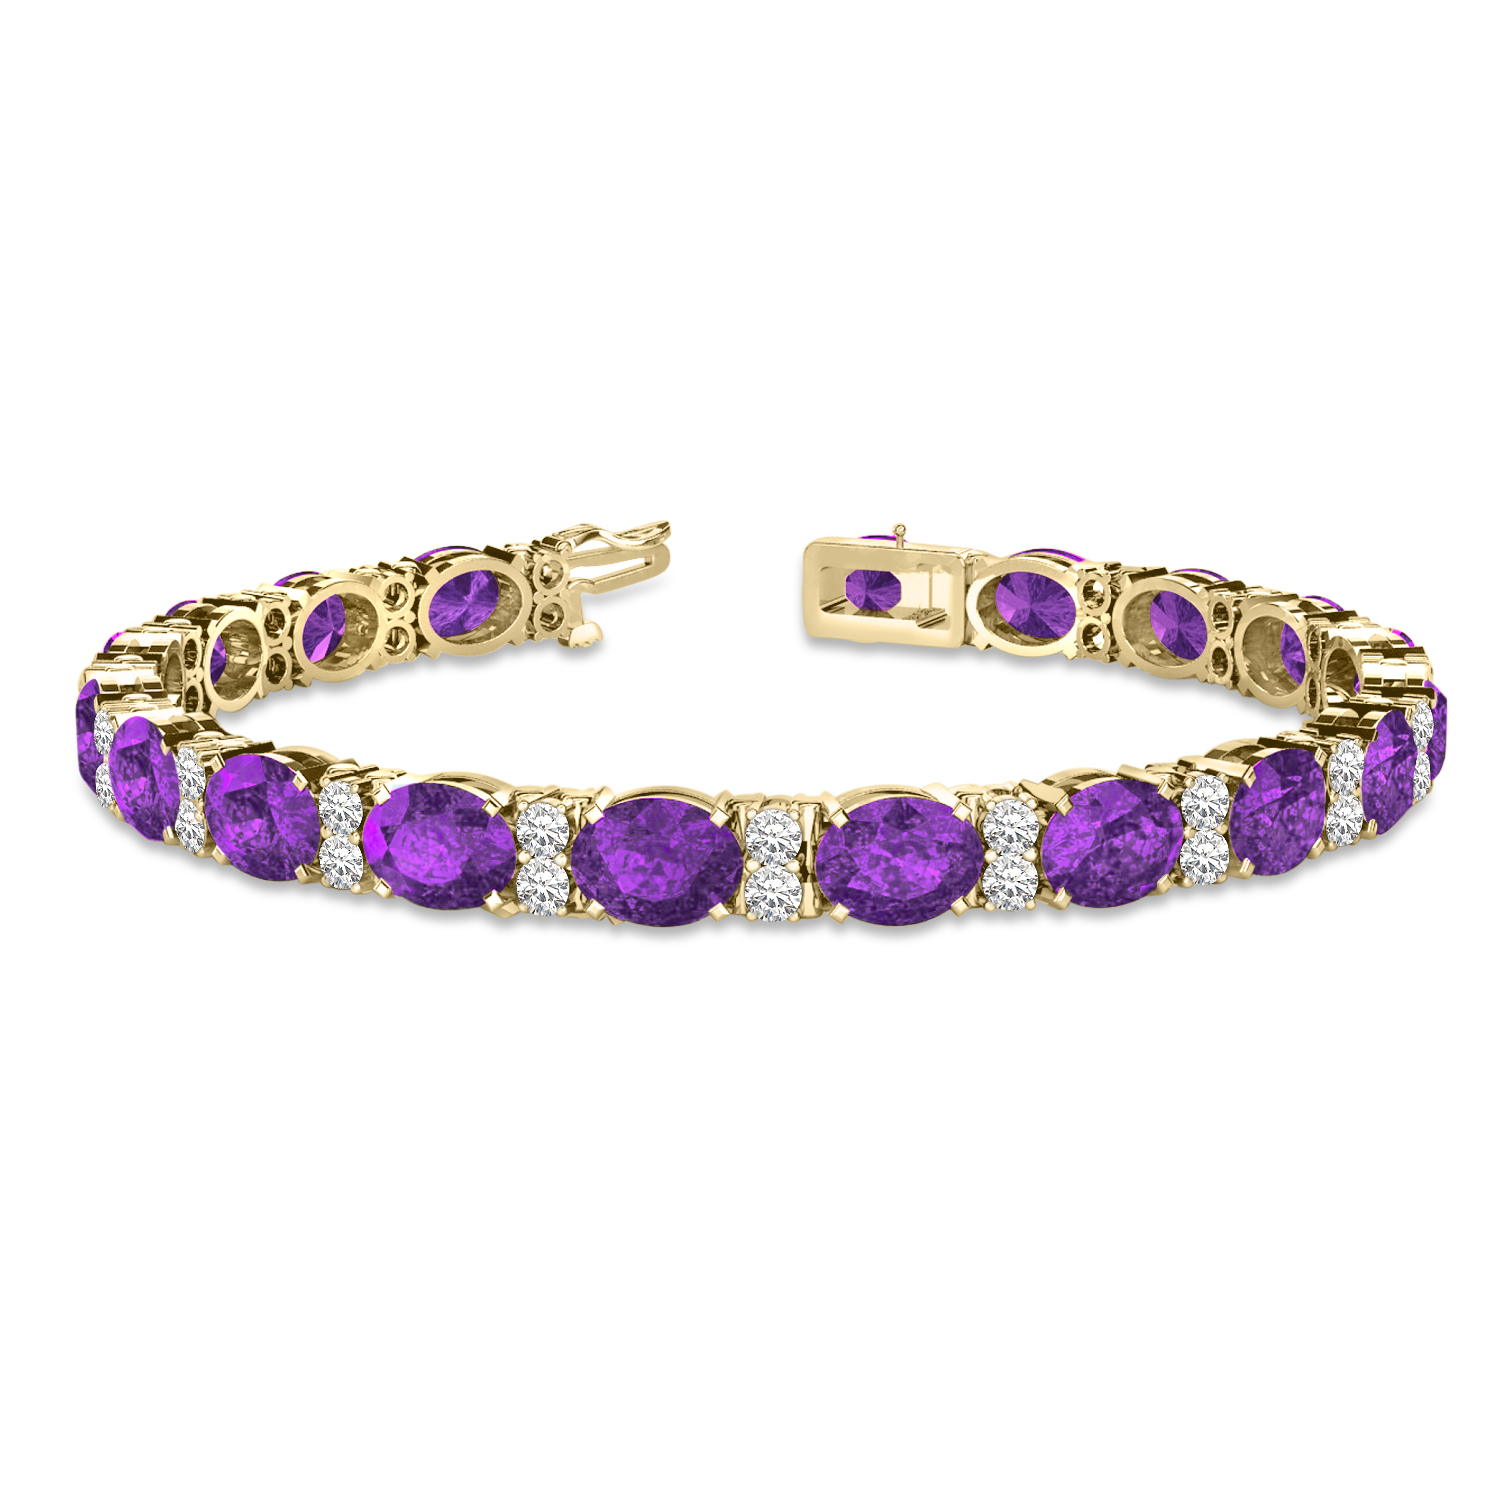 Diamond and Oval Cut Amethyst Tennis Bracelet 14k Yellow Gold (13.62ct)